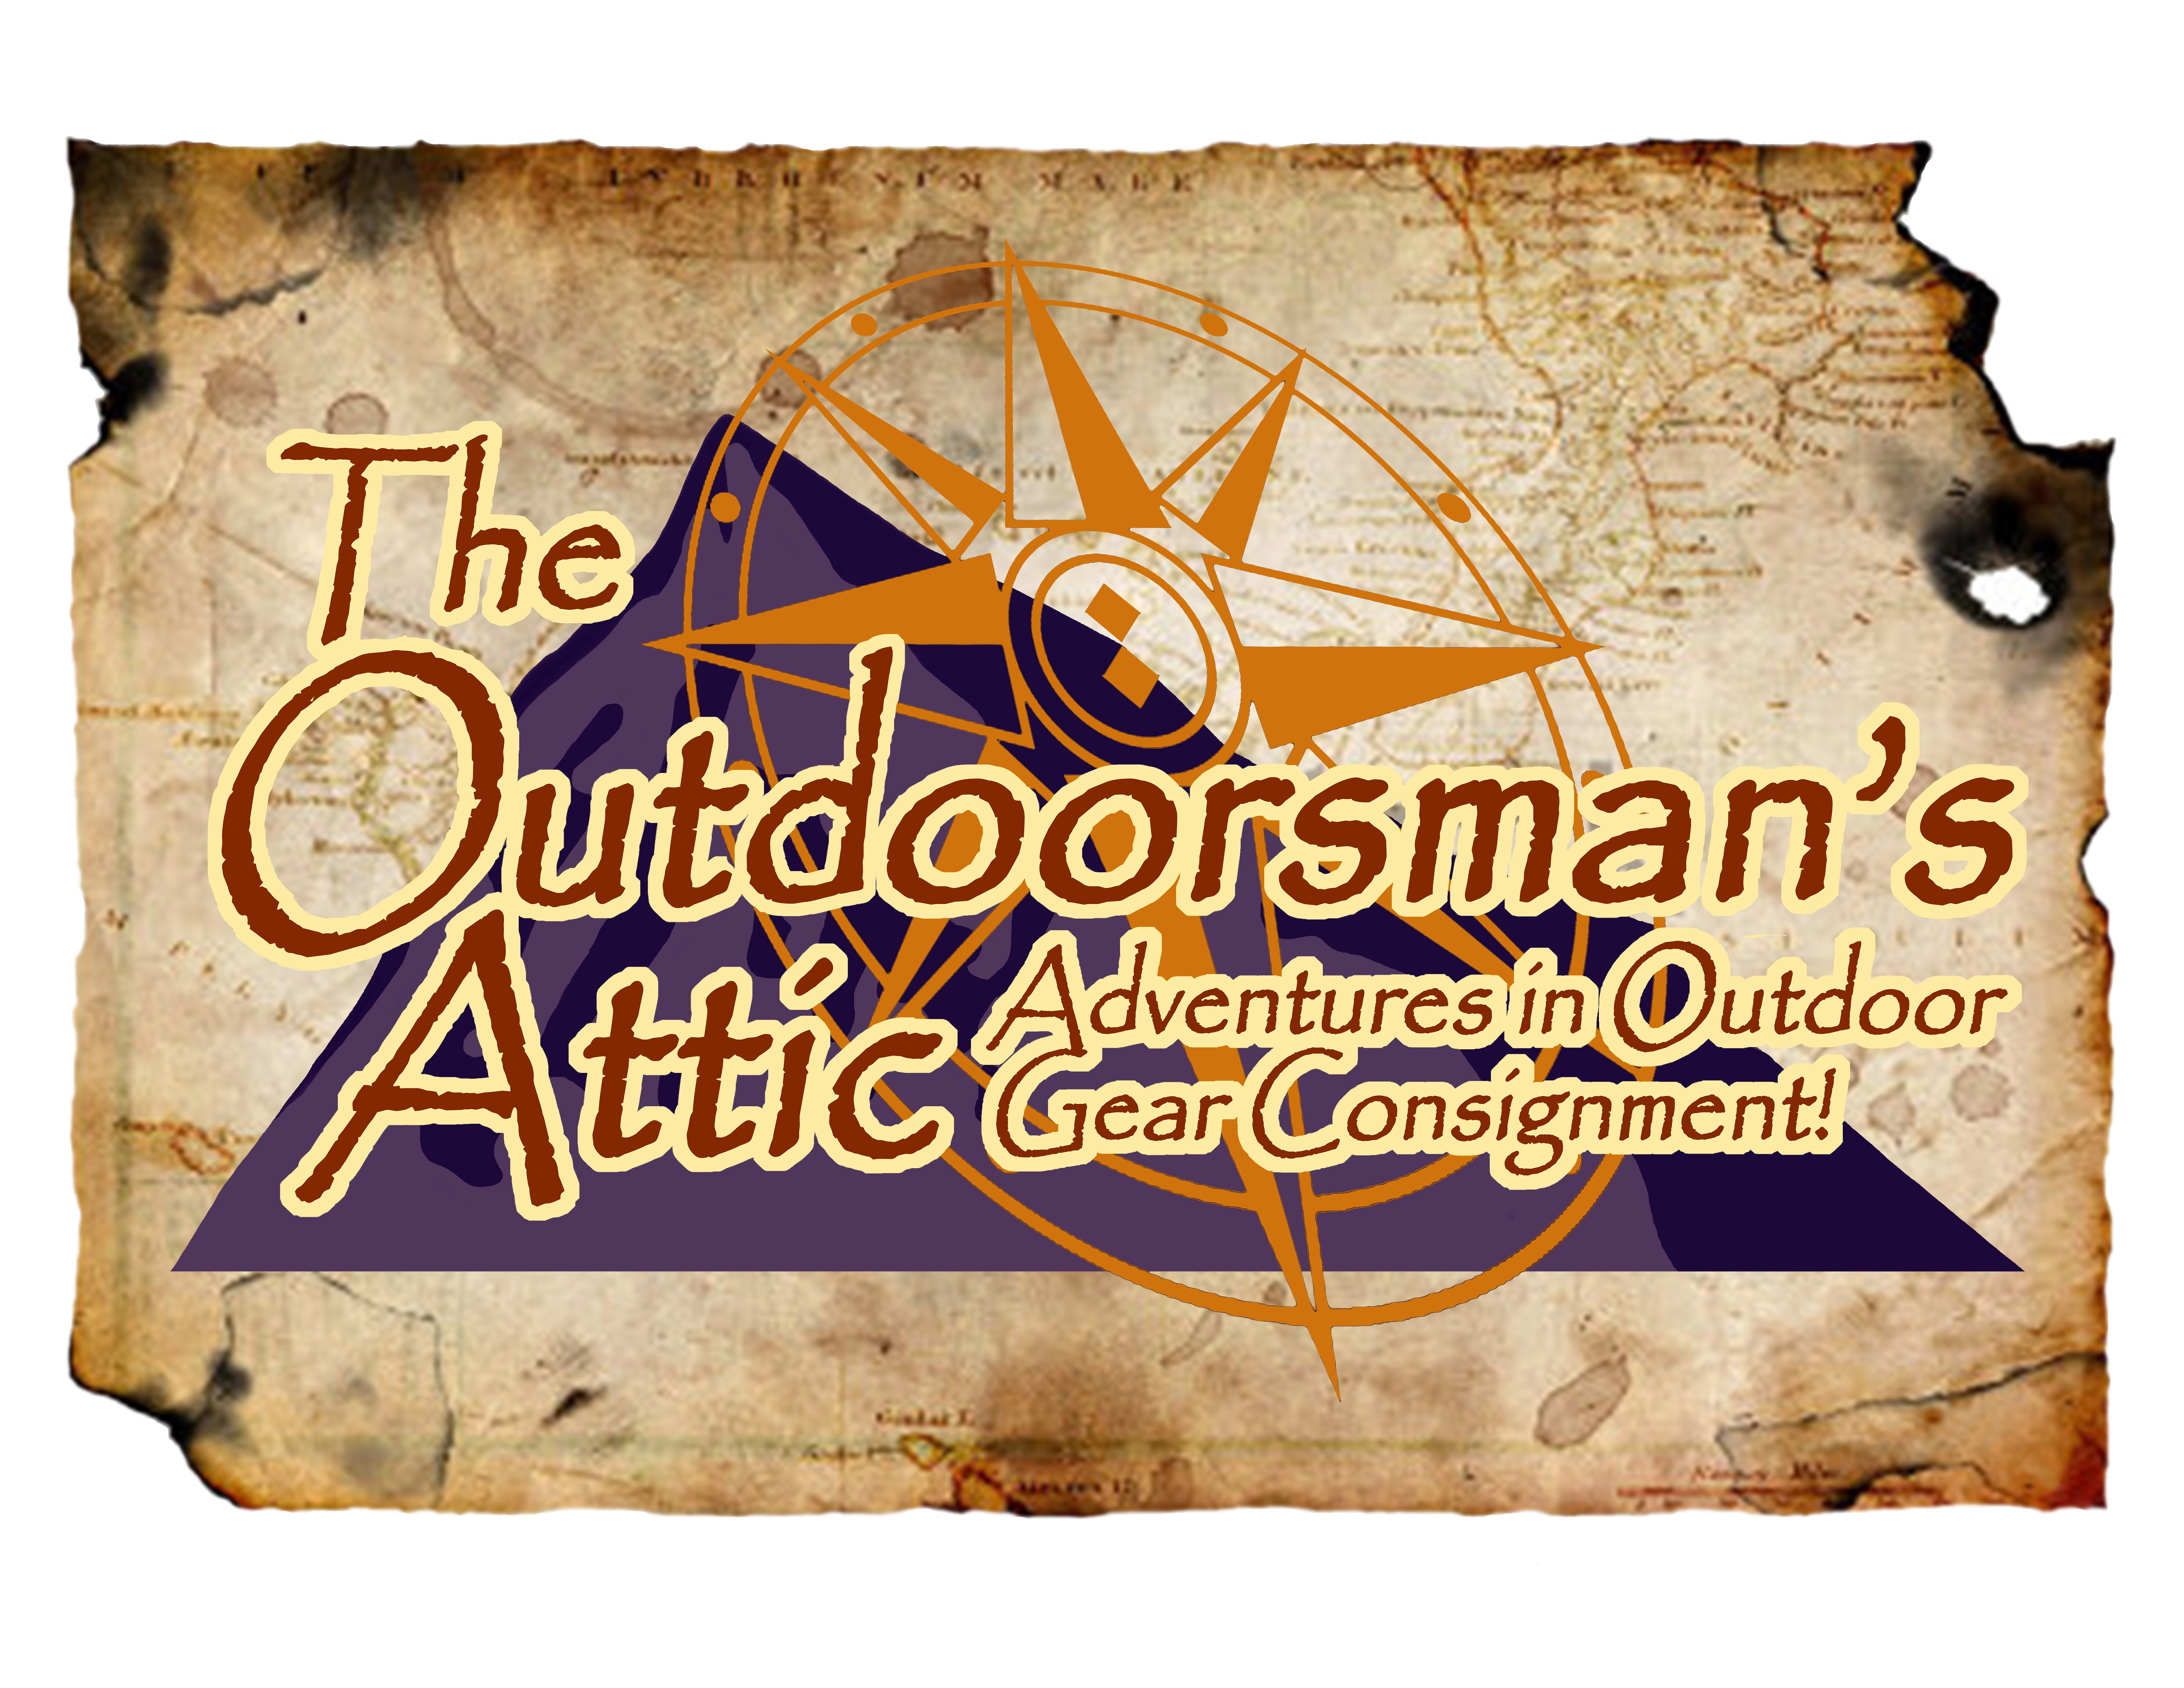 March 26: The Outdoorsman's Attic